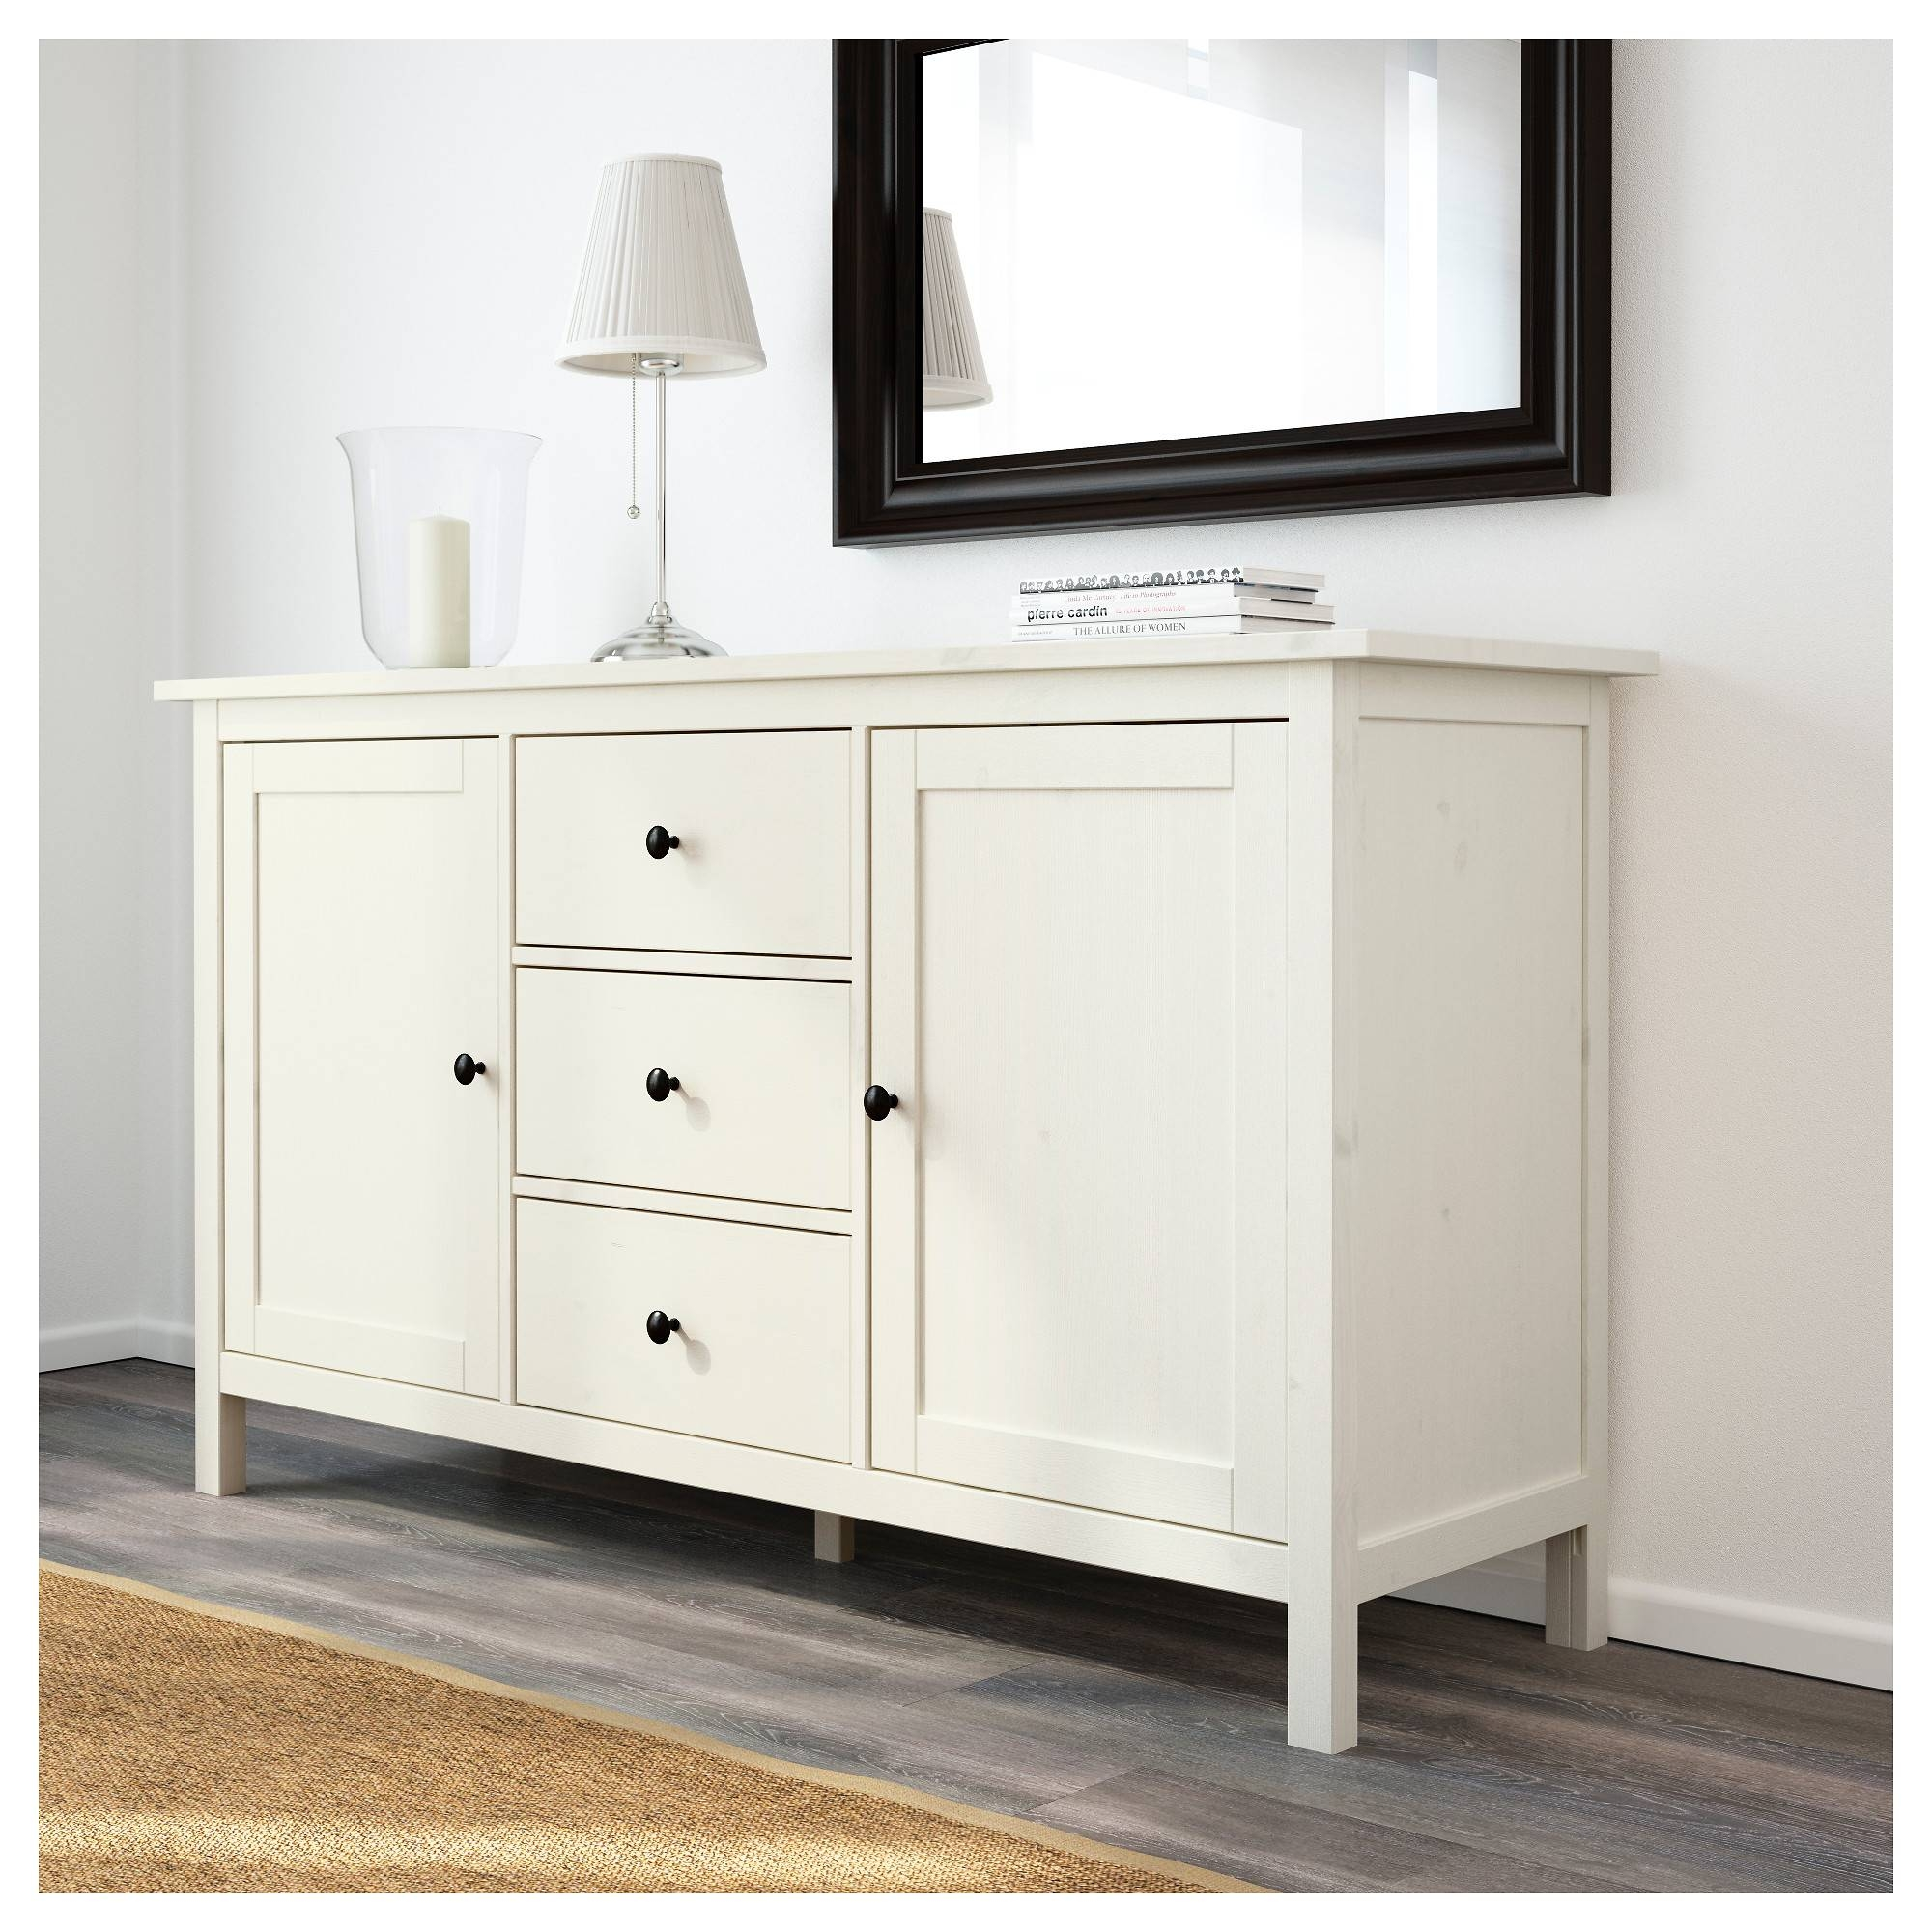 Hemnes Sideboard White Stain 157X88 Cm – Ikea For Sideboards And Tables (View 7 of 15)